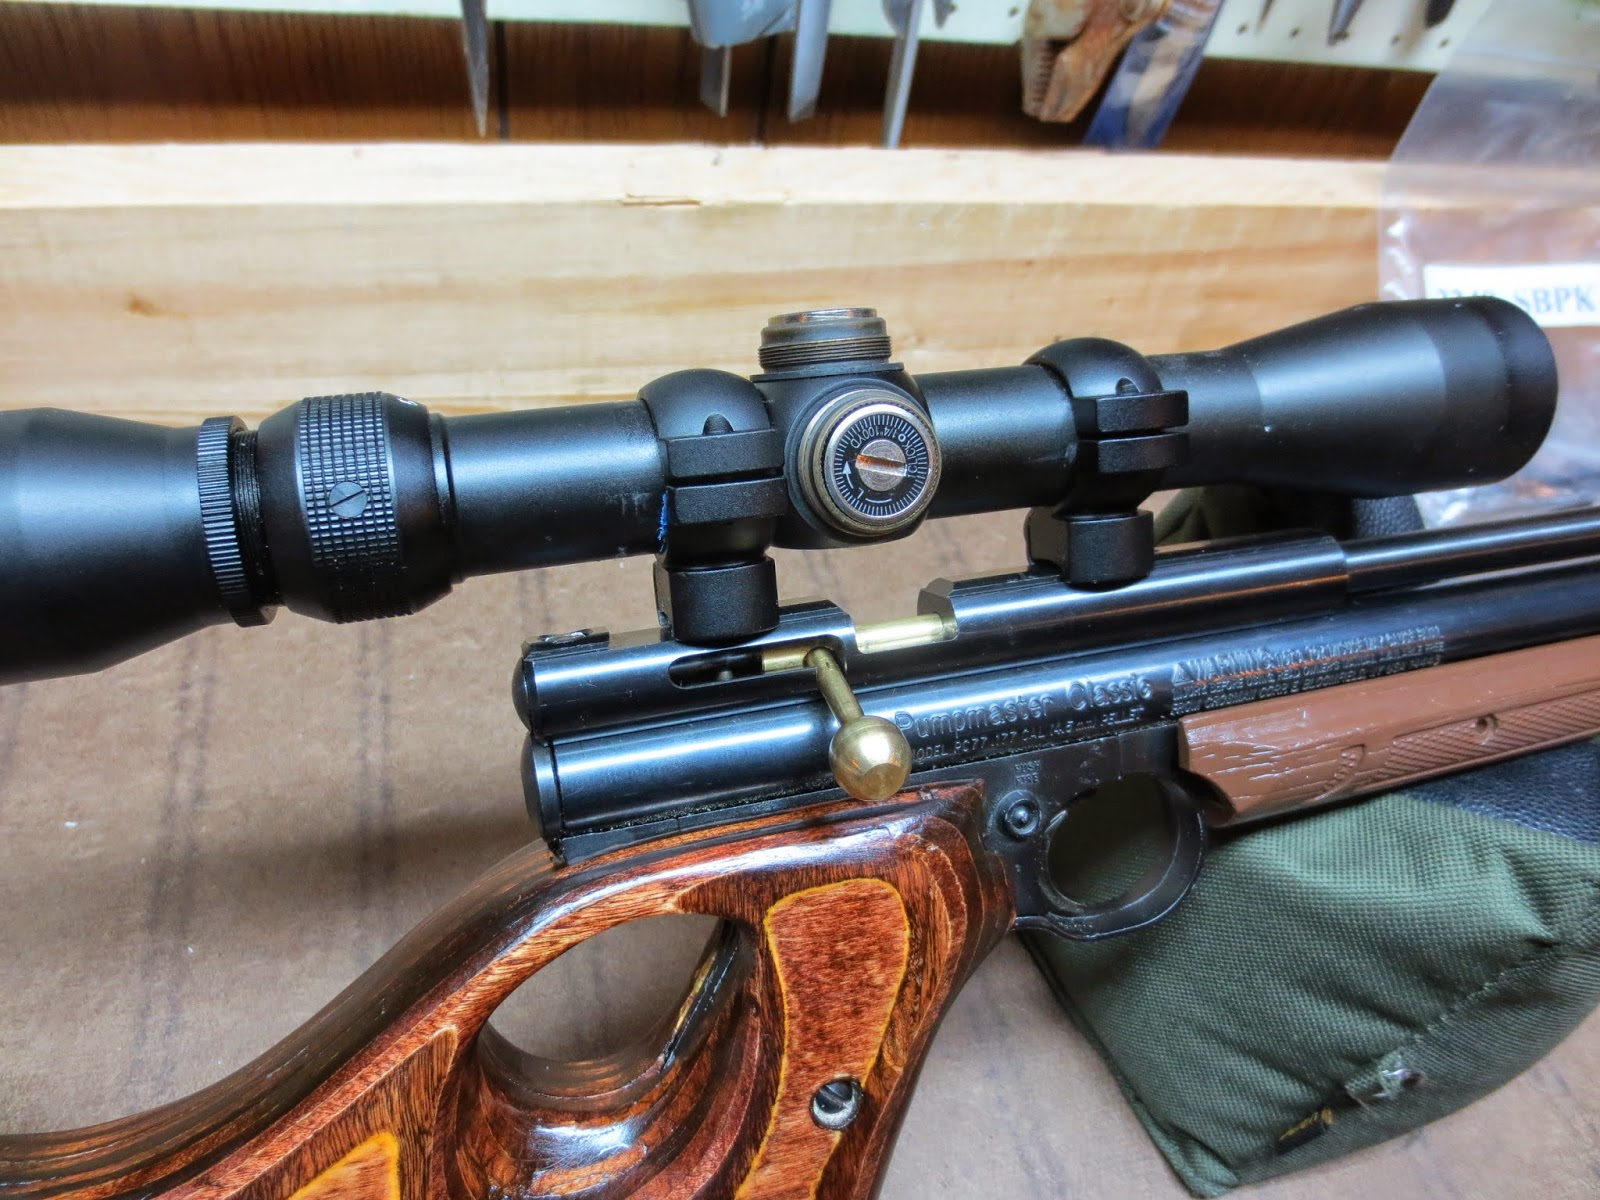 Added a scope.